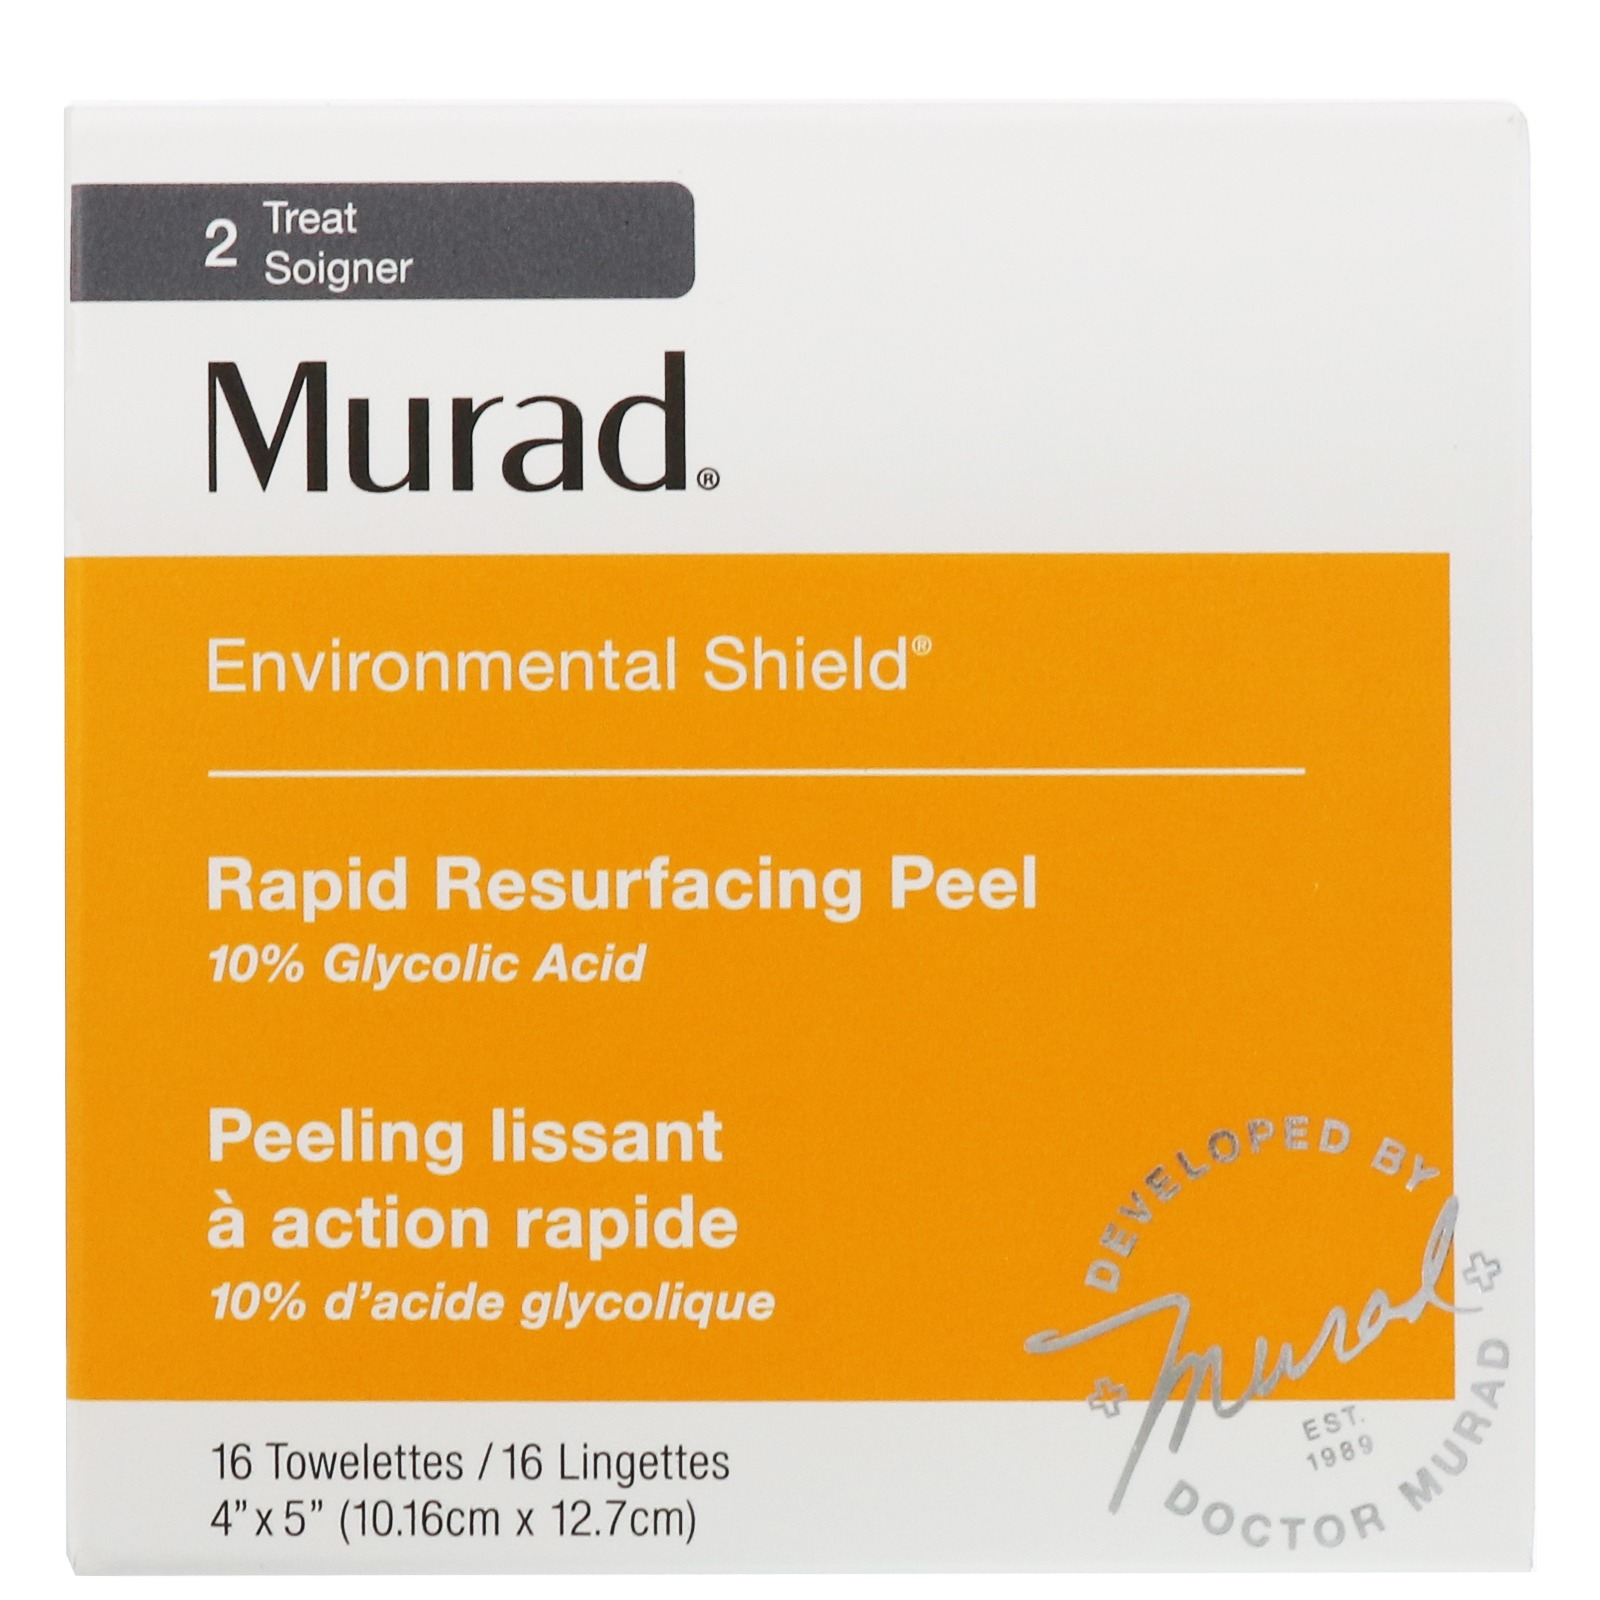 Murad Environmental Shield Rapid Resurfacing Peel, 16 Towelettes